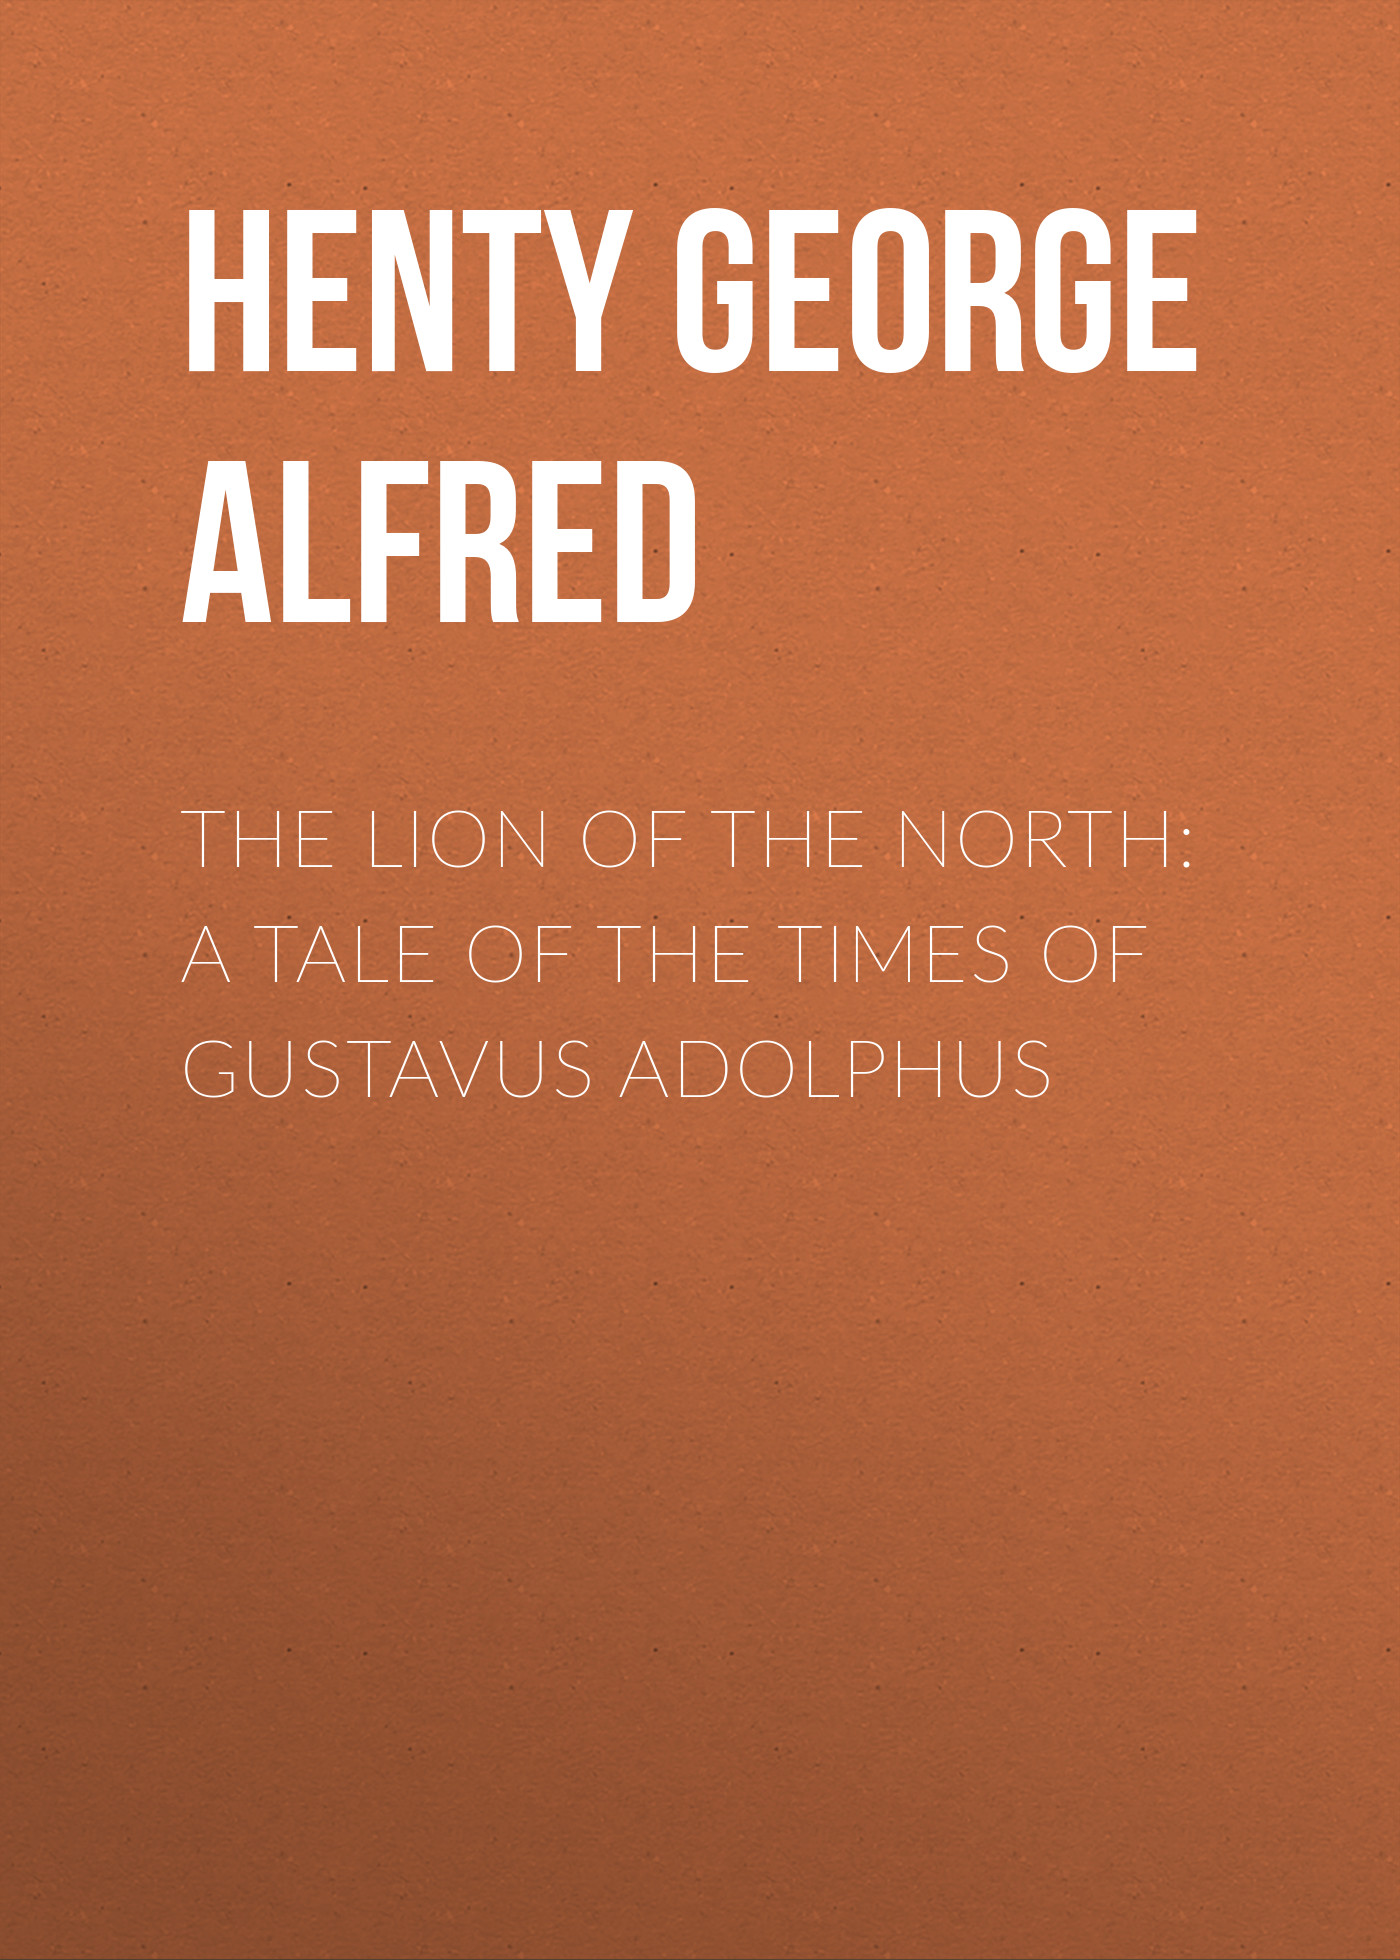 Henty George Alfred The Lion of the North: A Tale of the Times of Gustavus Adolphus henty george alfred redskin and cow boy a tale of the western plains